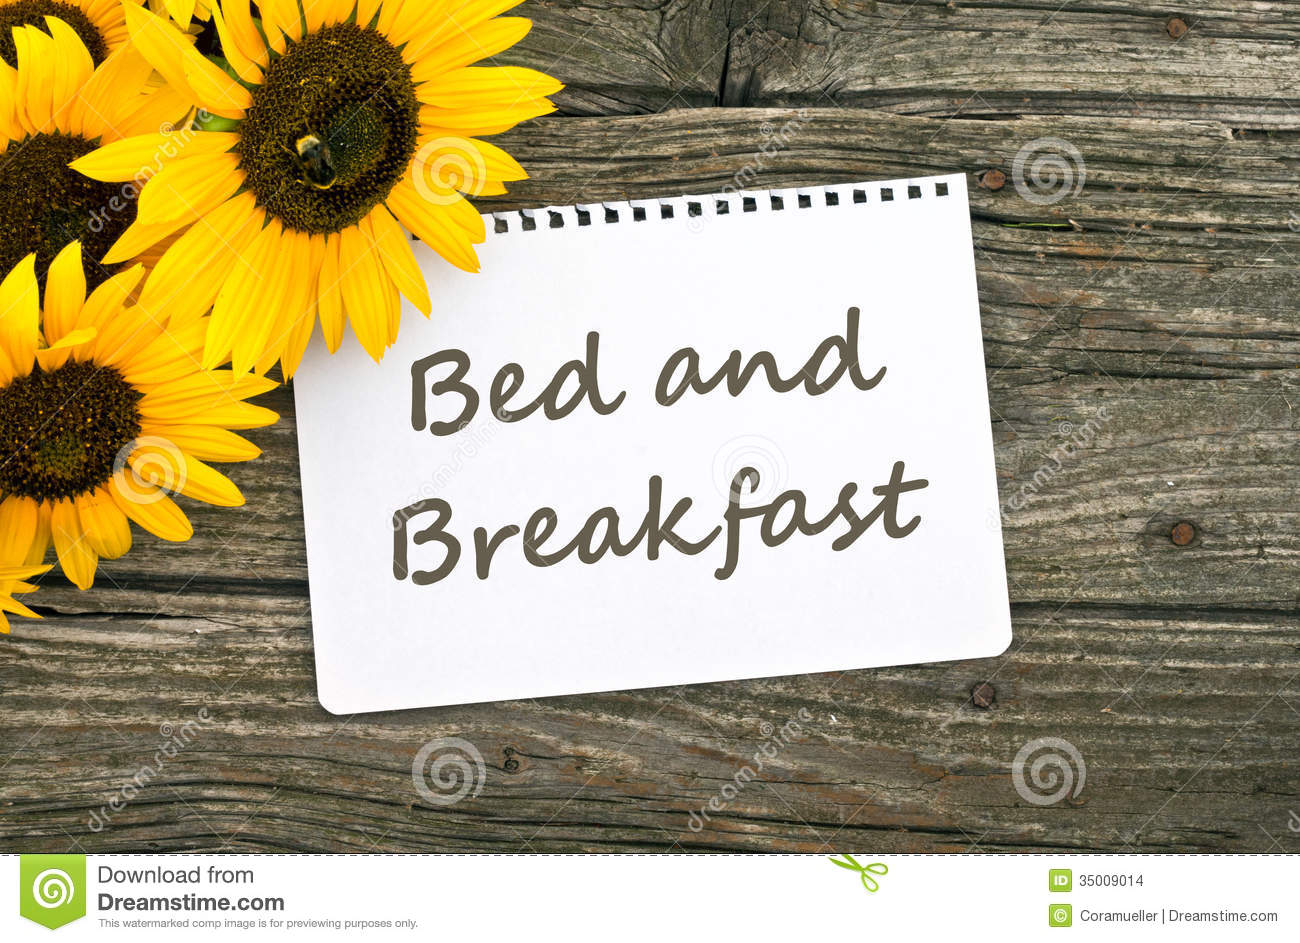 Bed and Breakfast Clip Art.